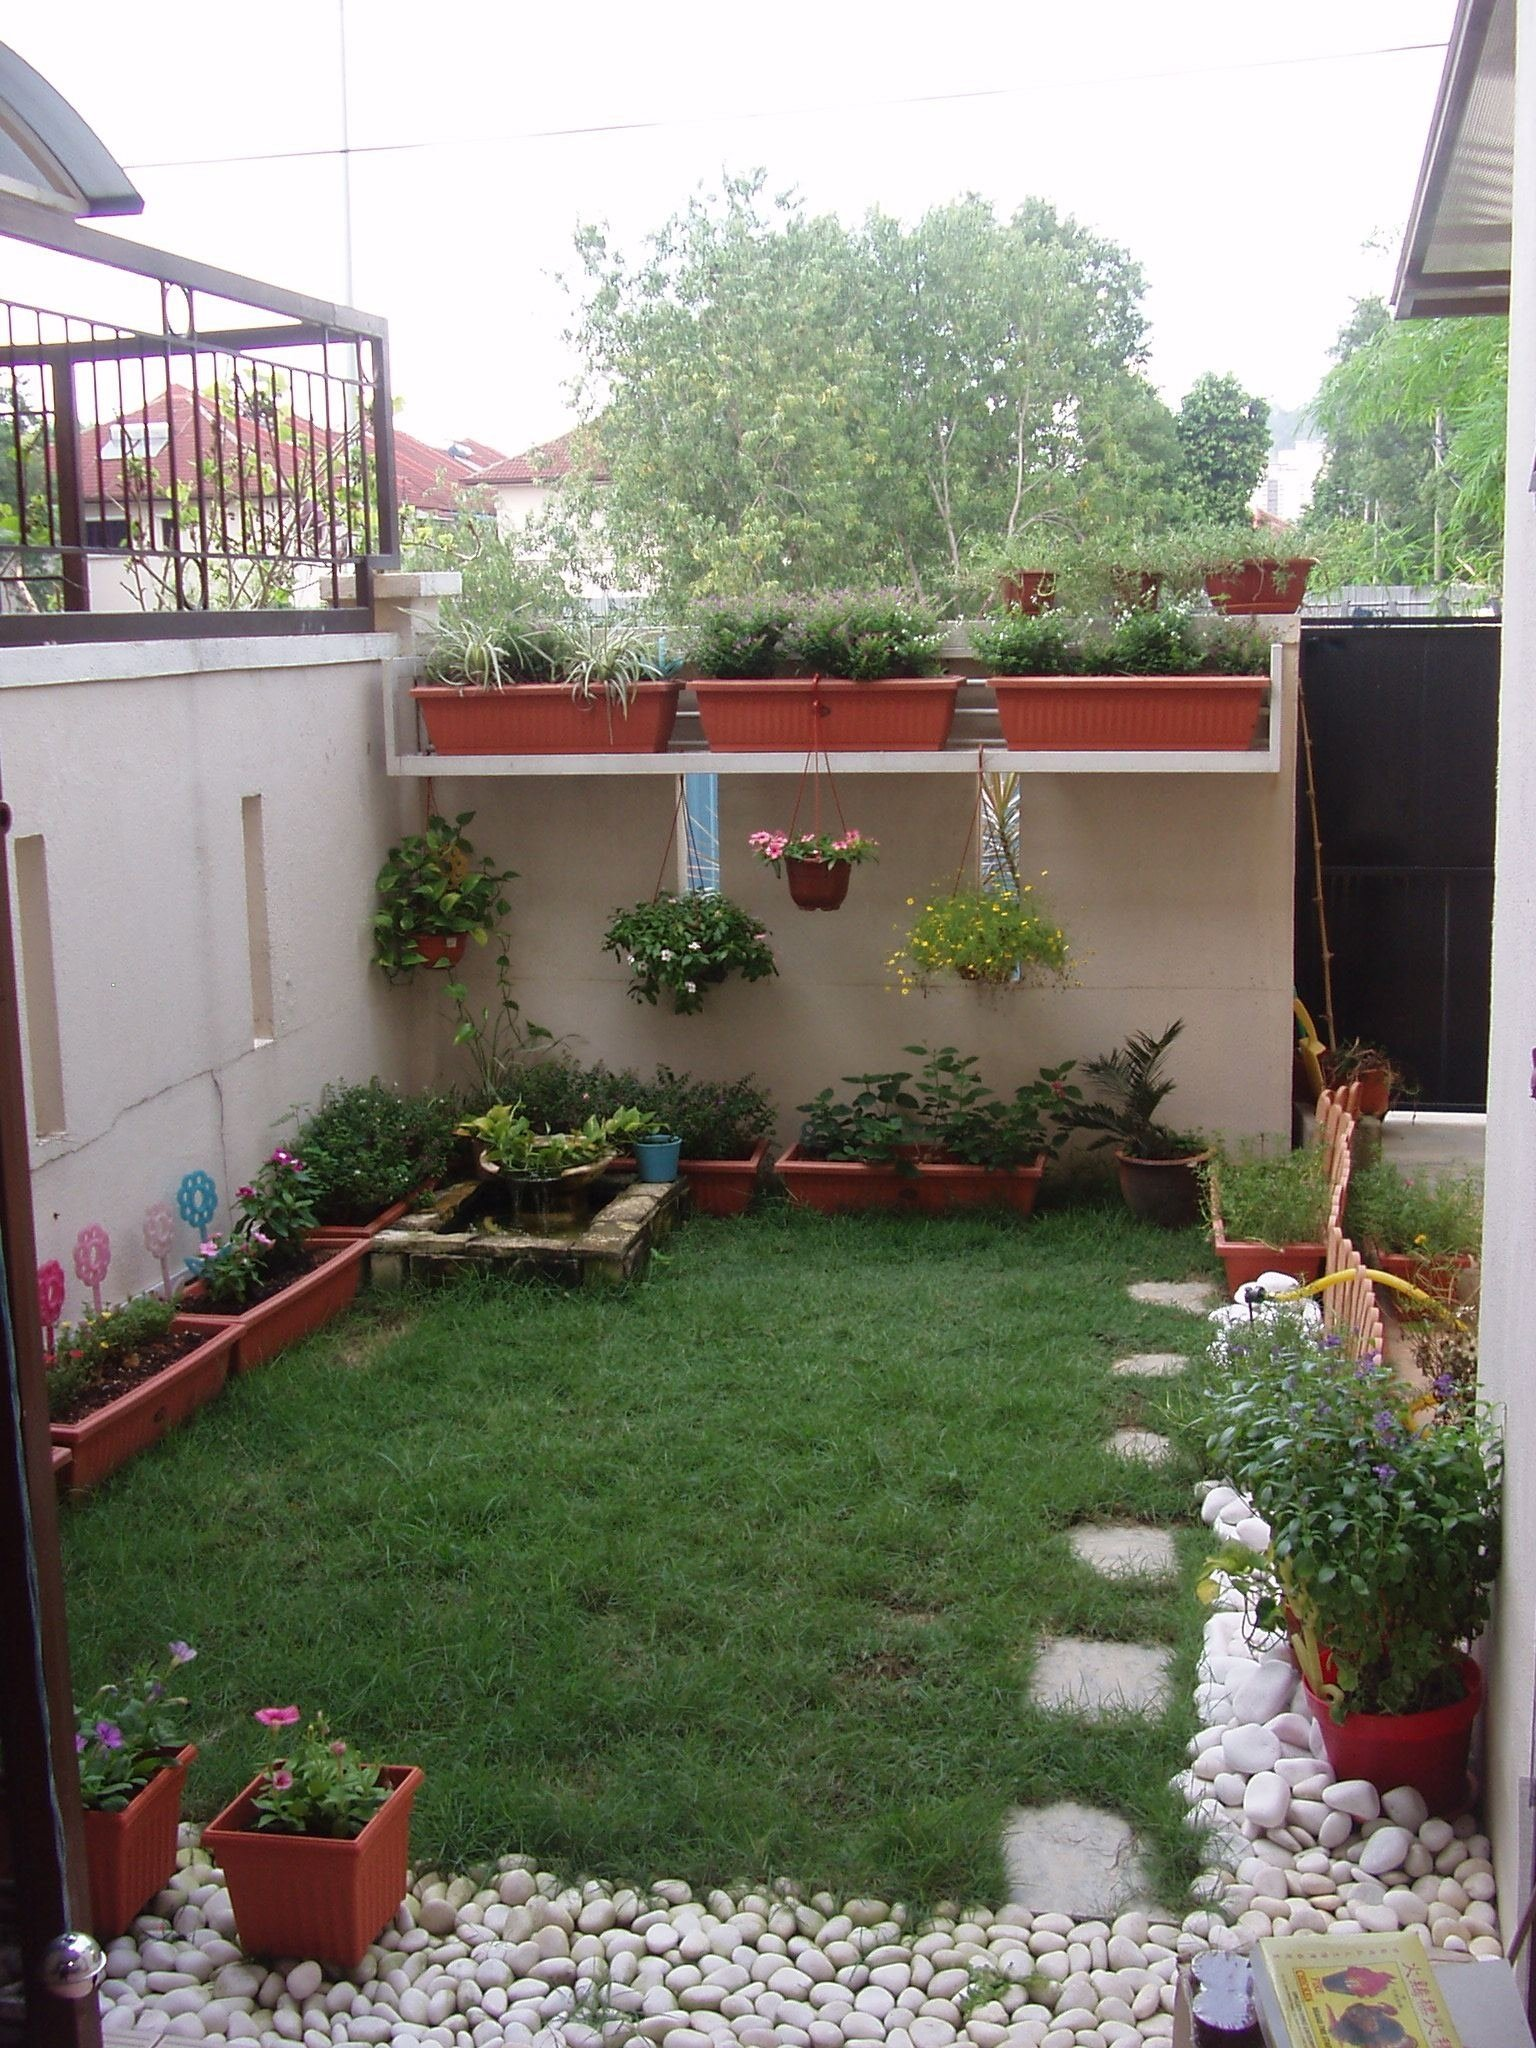 10 Cute Garden Ideas For Small Yards incredible garden ideas for small yard livetomanage 2020